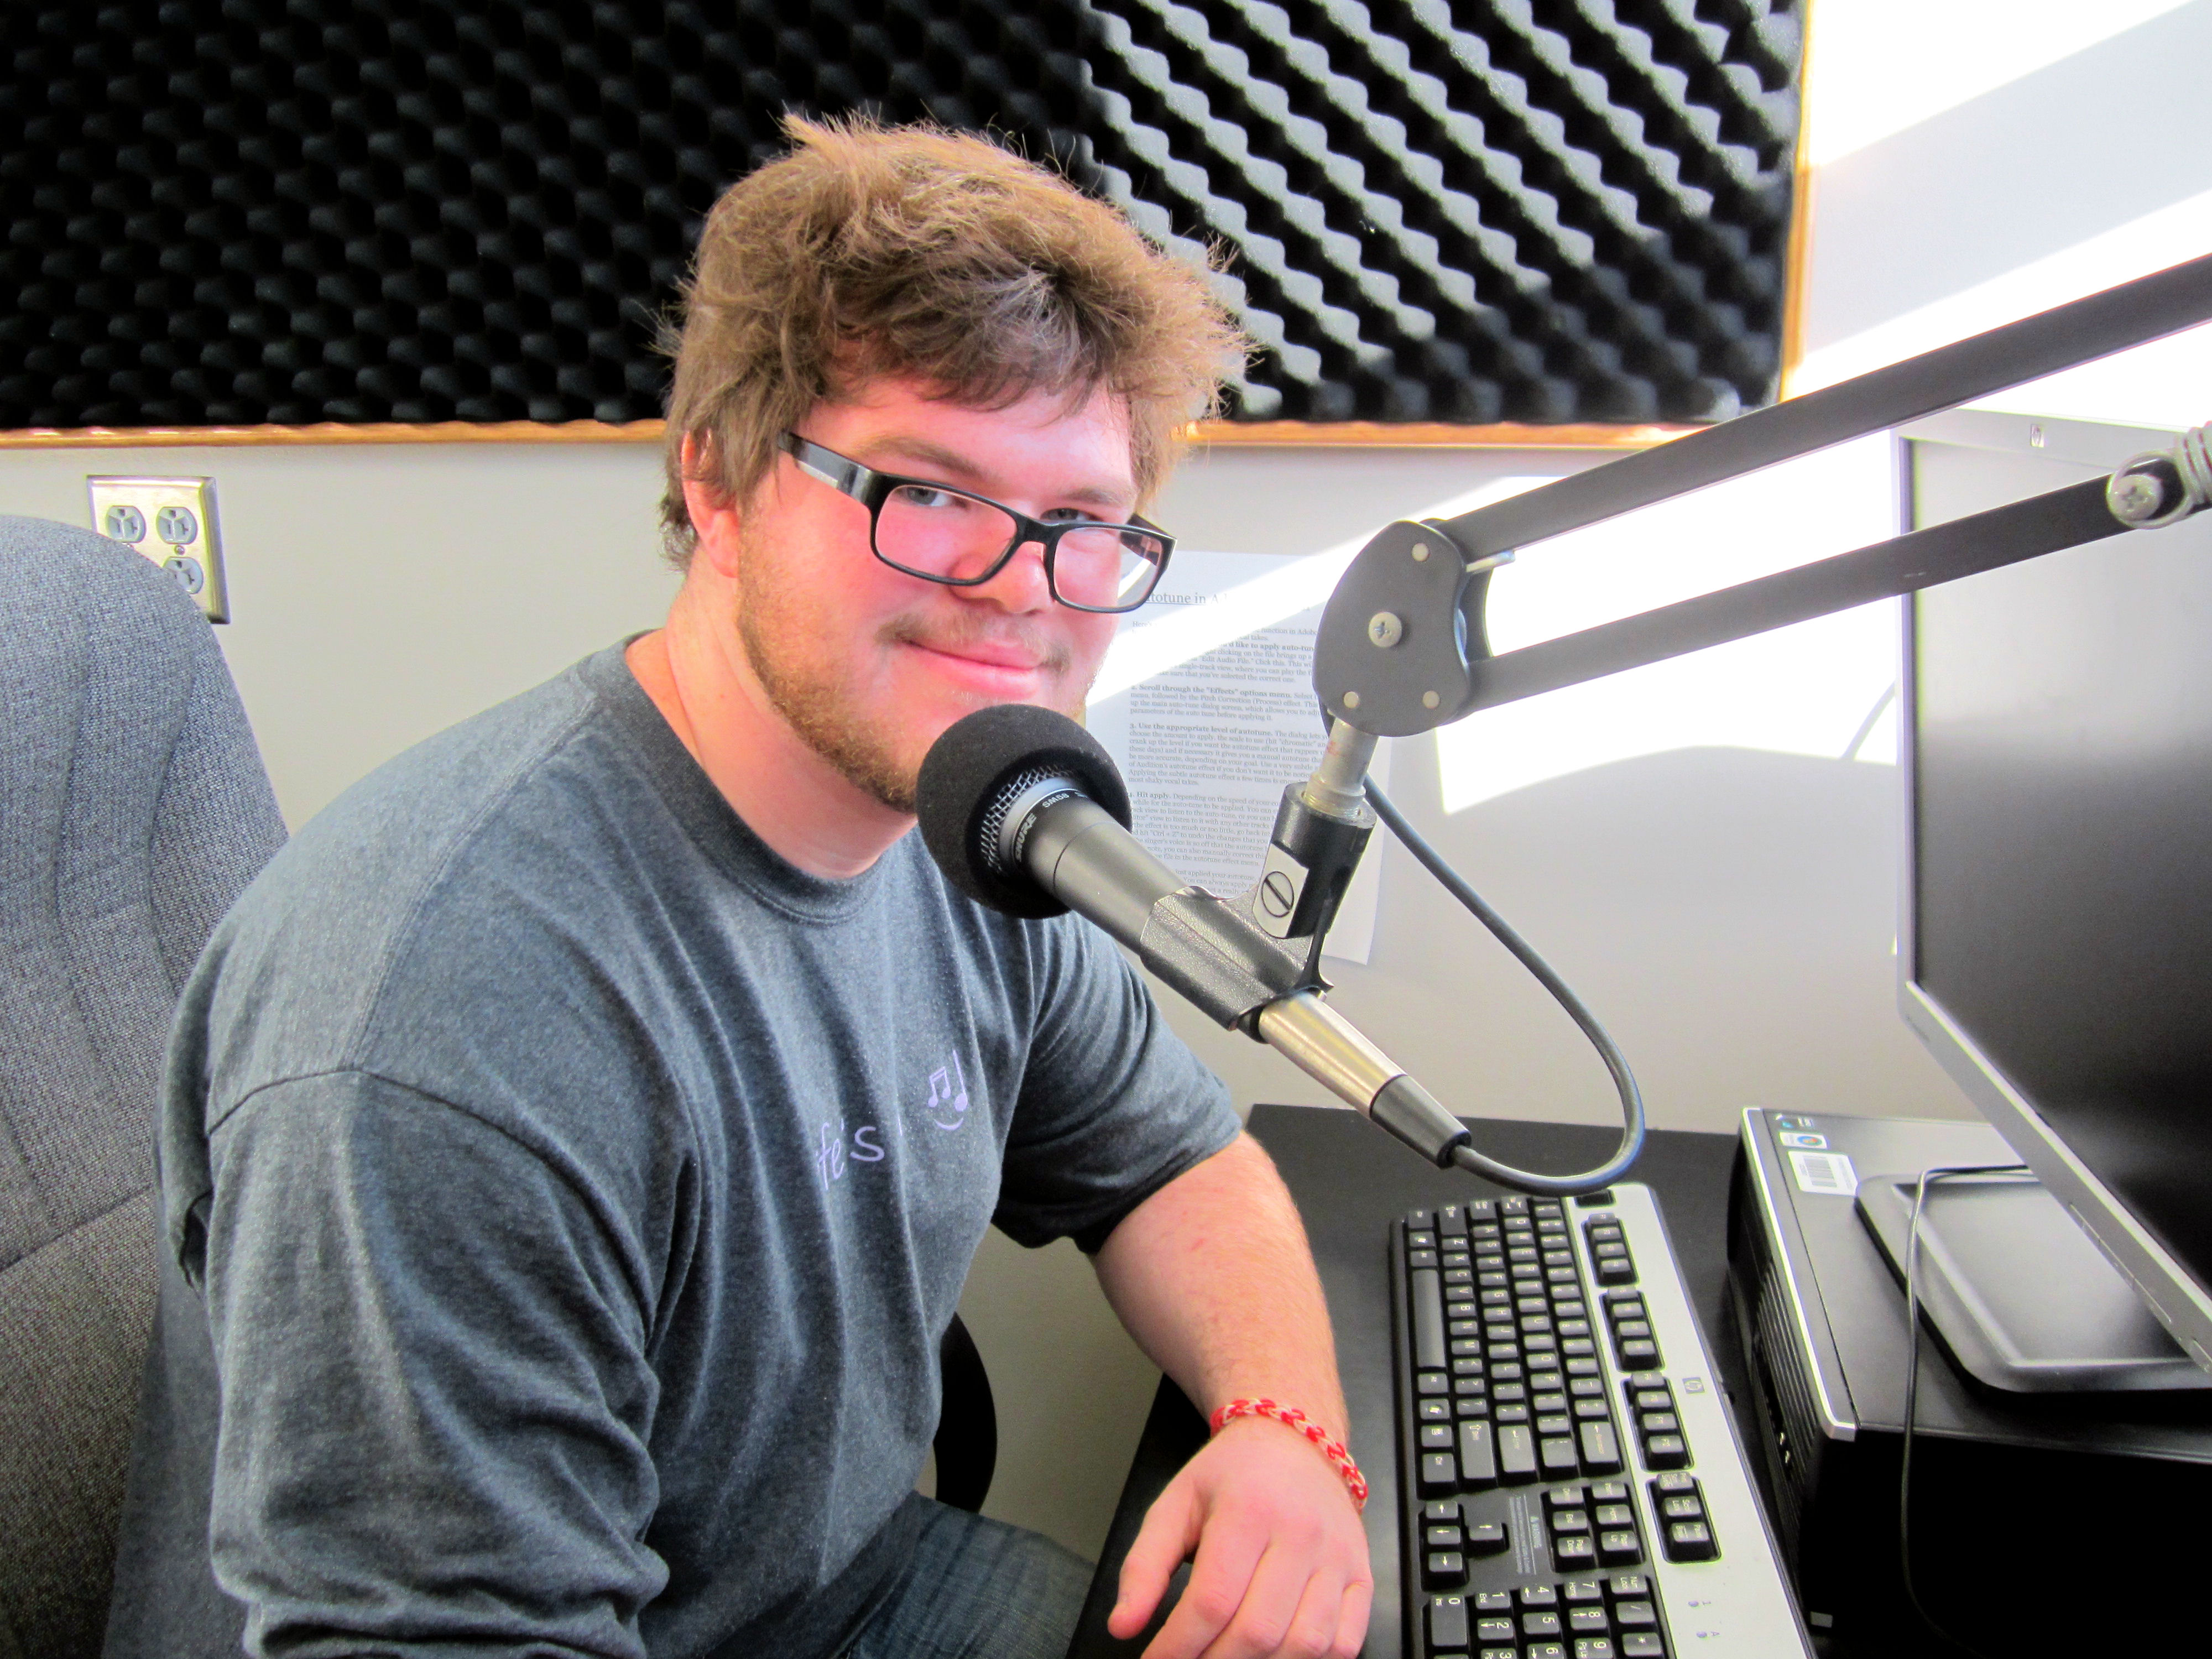 seth senior personals Hoping to adopt: seth and amy 1,410 likes 1  we began dating in 2010 and have been growing more  seth also works full time as a senior radiological.